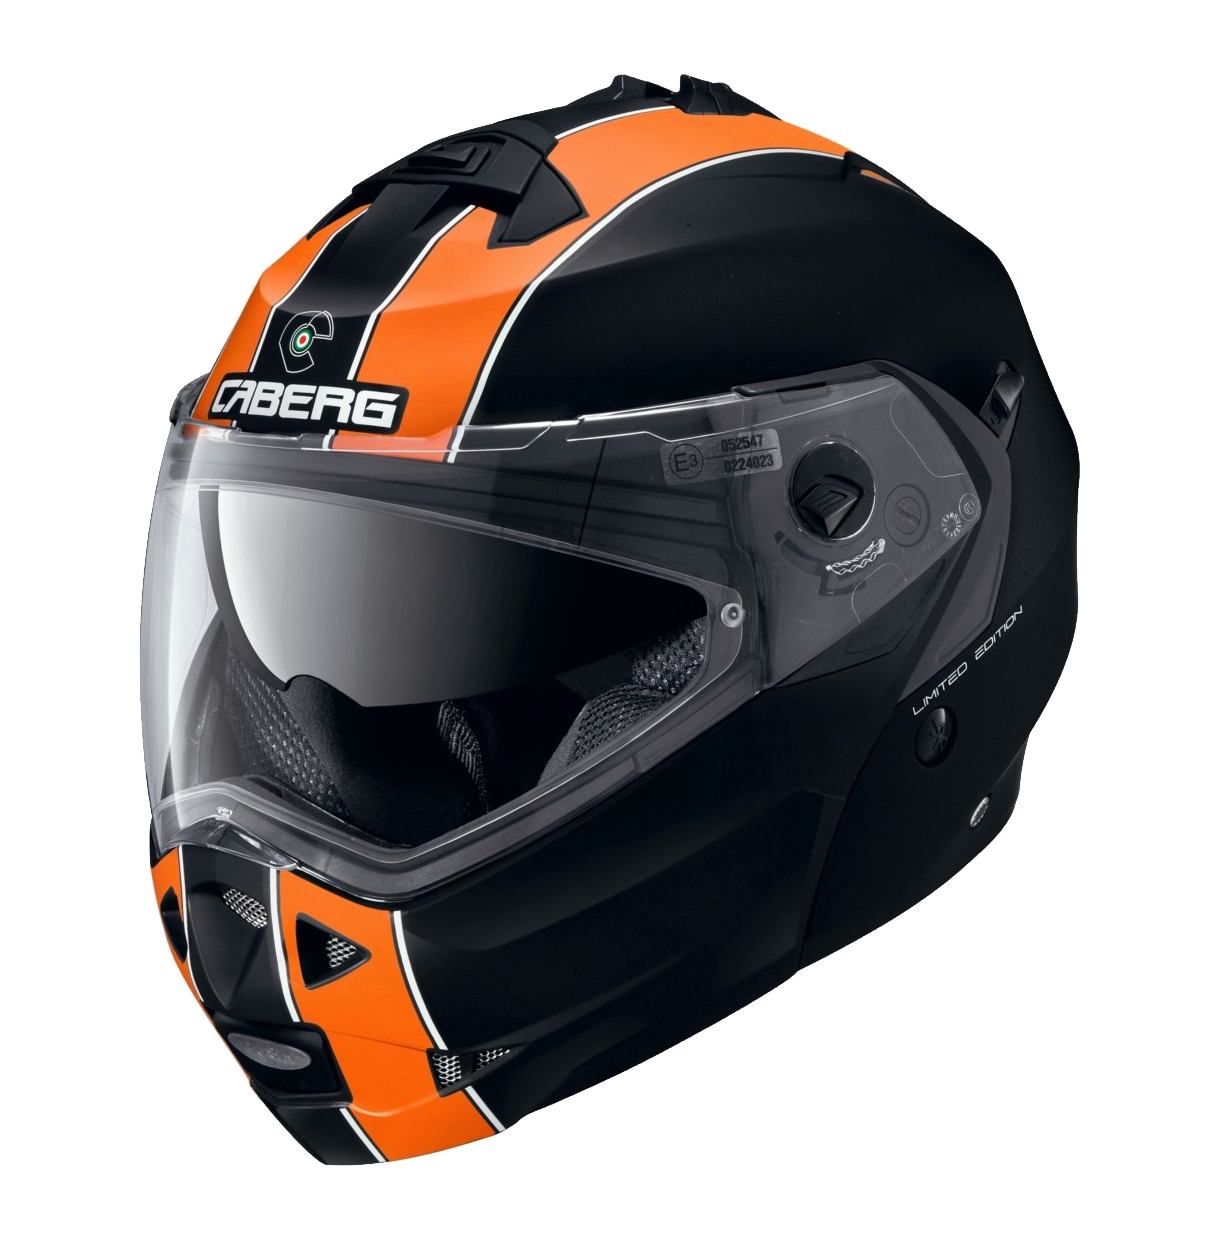 Motorcycle helmet png. Helmets picture web icons